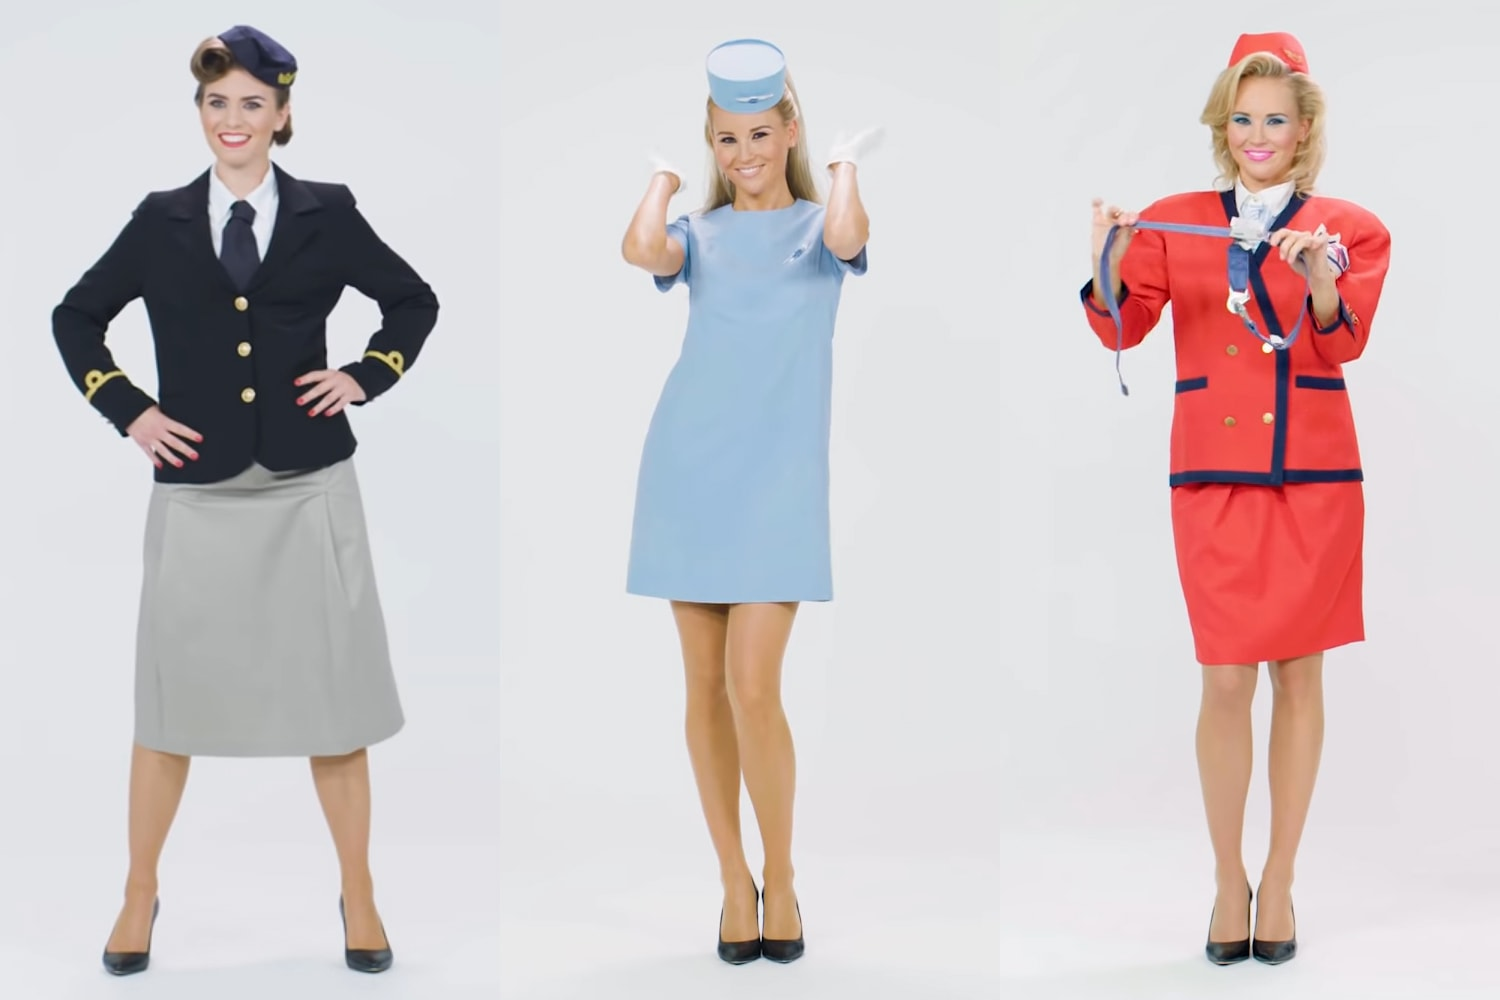 VIDEO: Czech Airlines Celebrates 95 Years of Cabin Crew Uniforms